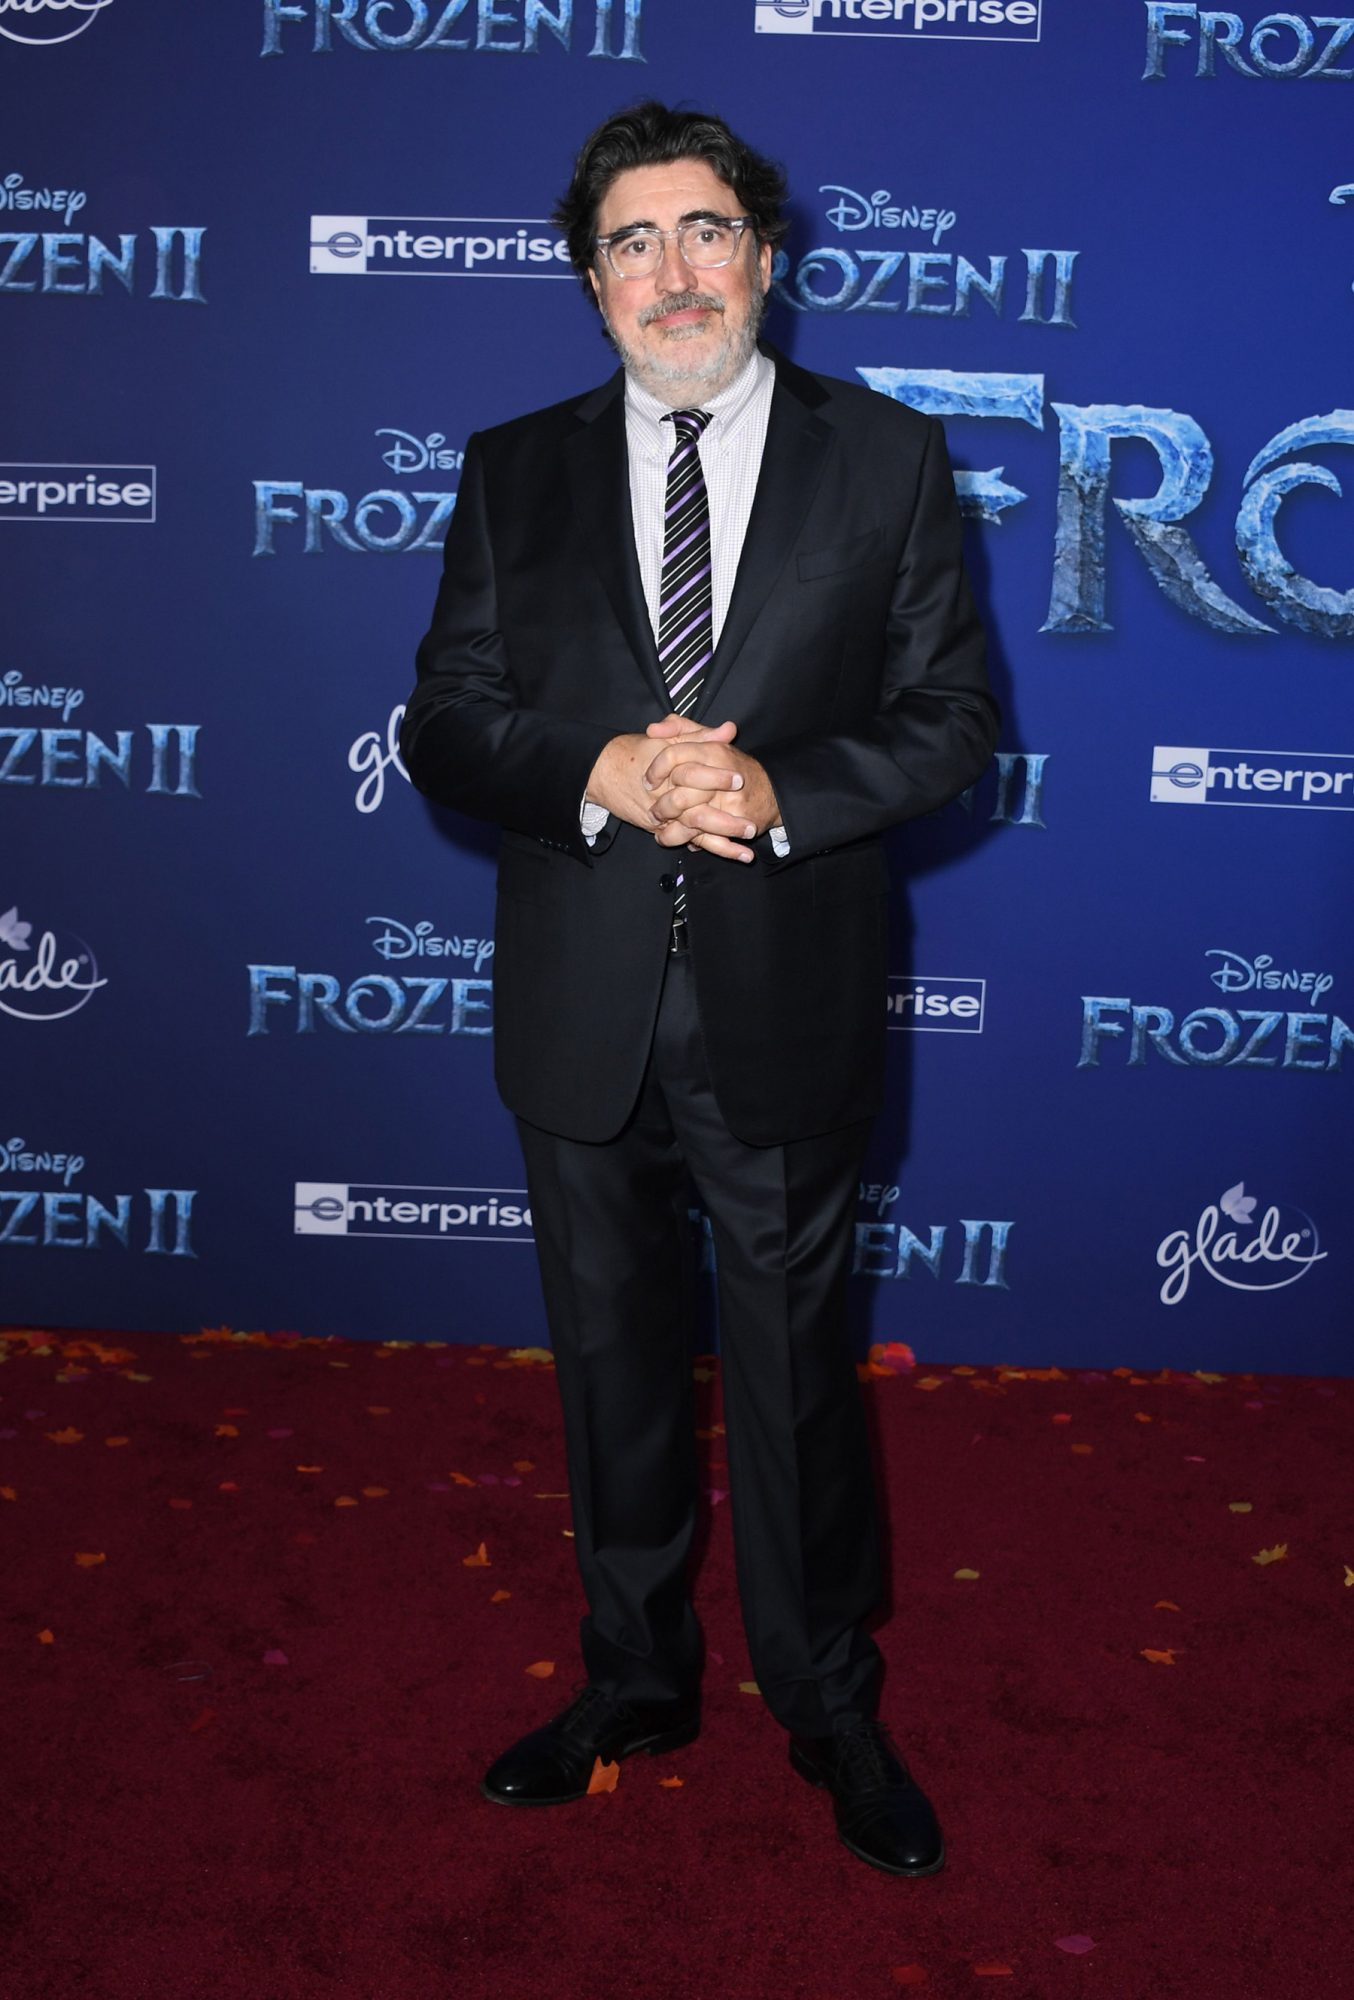 US-ENTERTAINMENT-FILM-DISNEY-FROZEN2